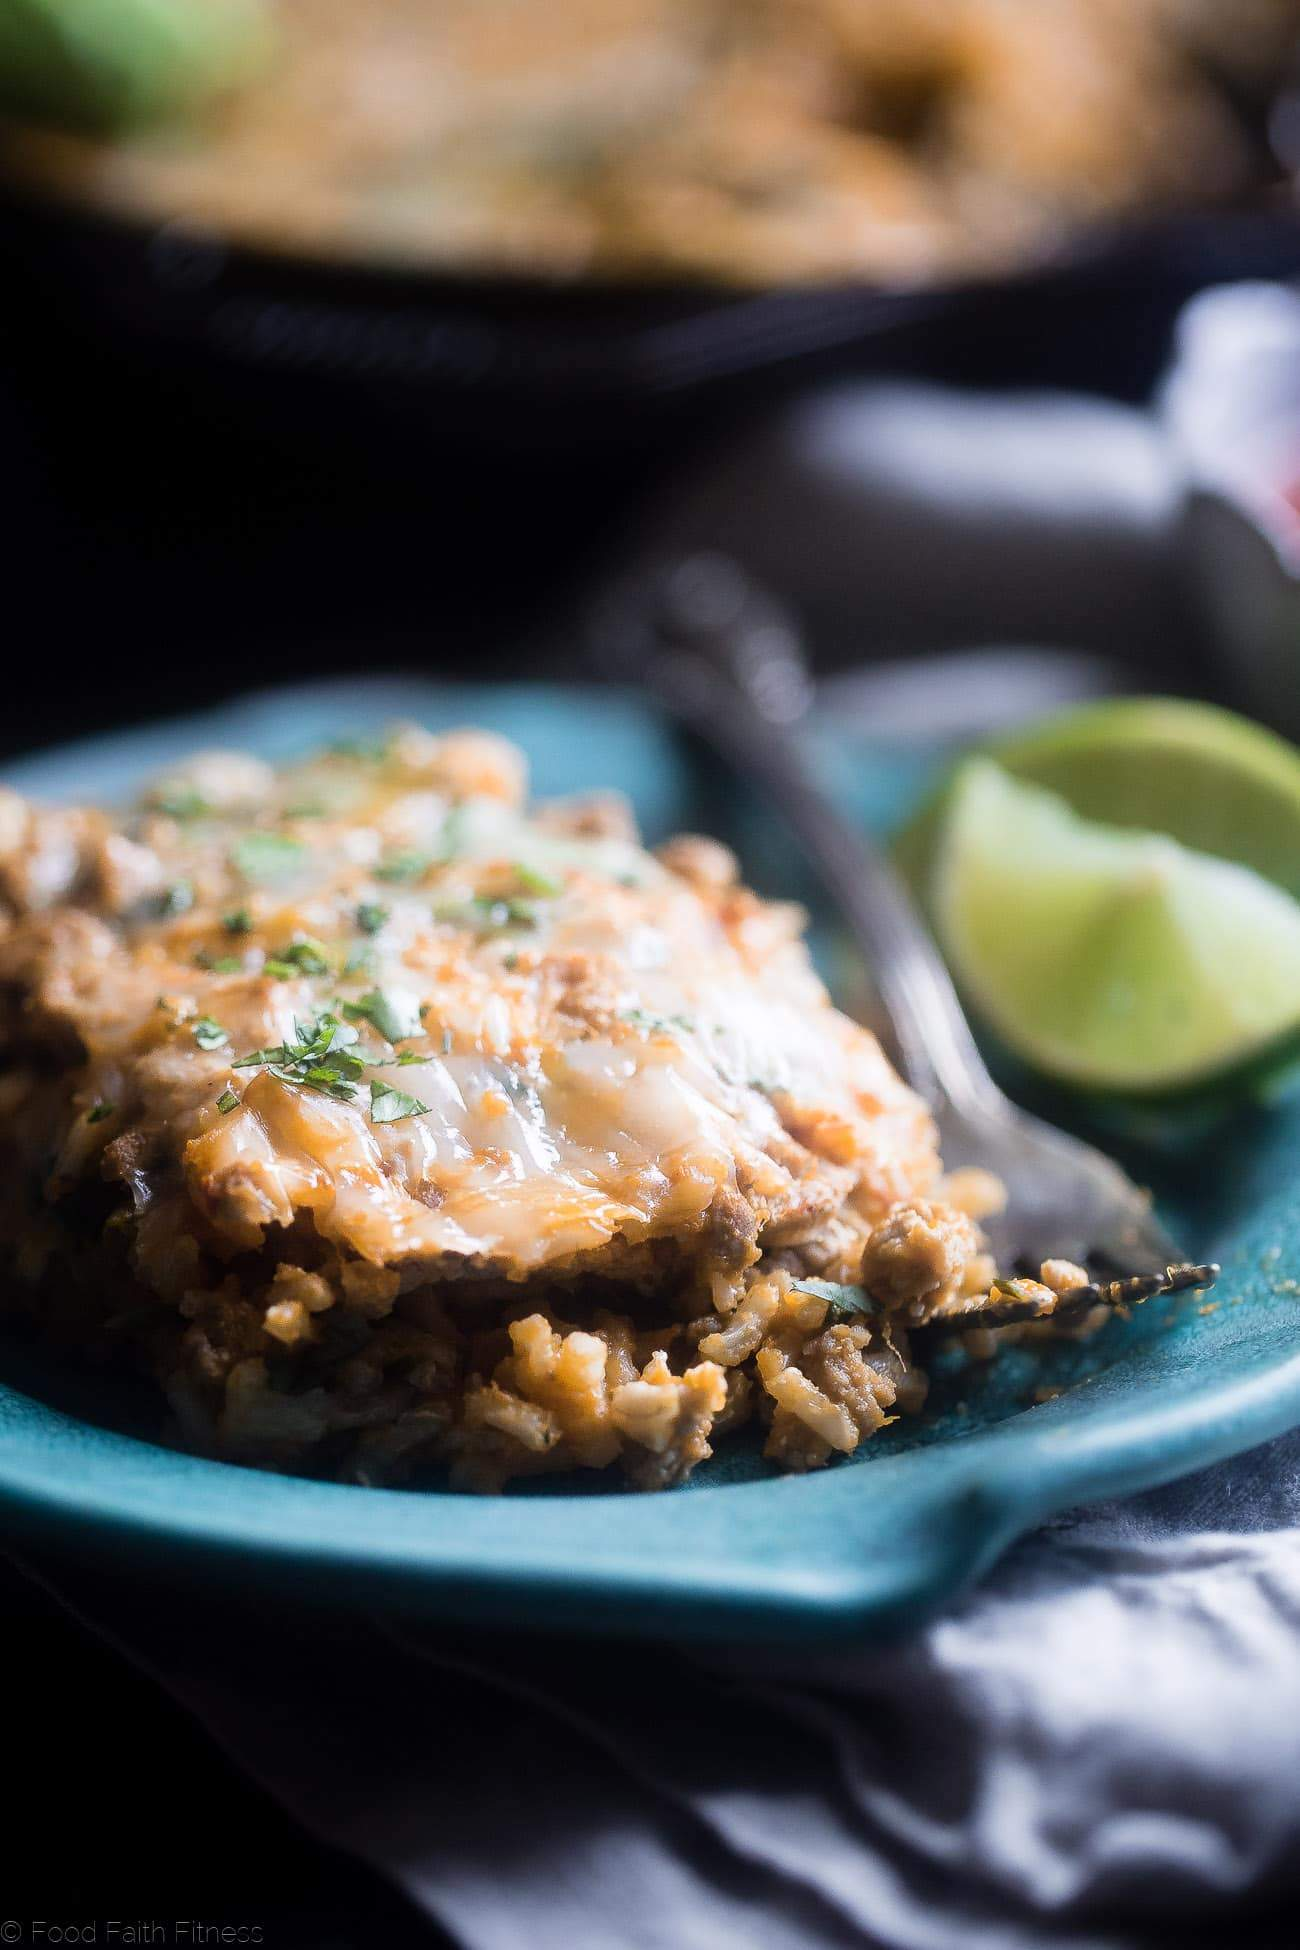 One Pot Mexican Chicken Rice Casserole - This chicken Mexican rice casserole uses sweet potato for extra creaminess! It's a healthy, gluten free, 8 ingredient dinner for busy weeknights that is only 330 calories!   Foodfaithfitness.com   @FoodFaithFit